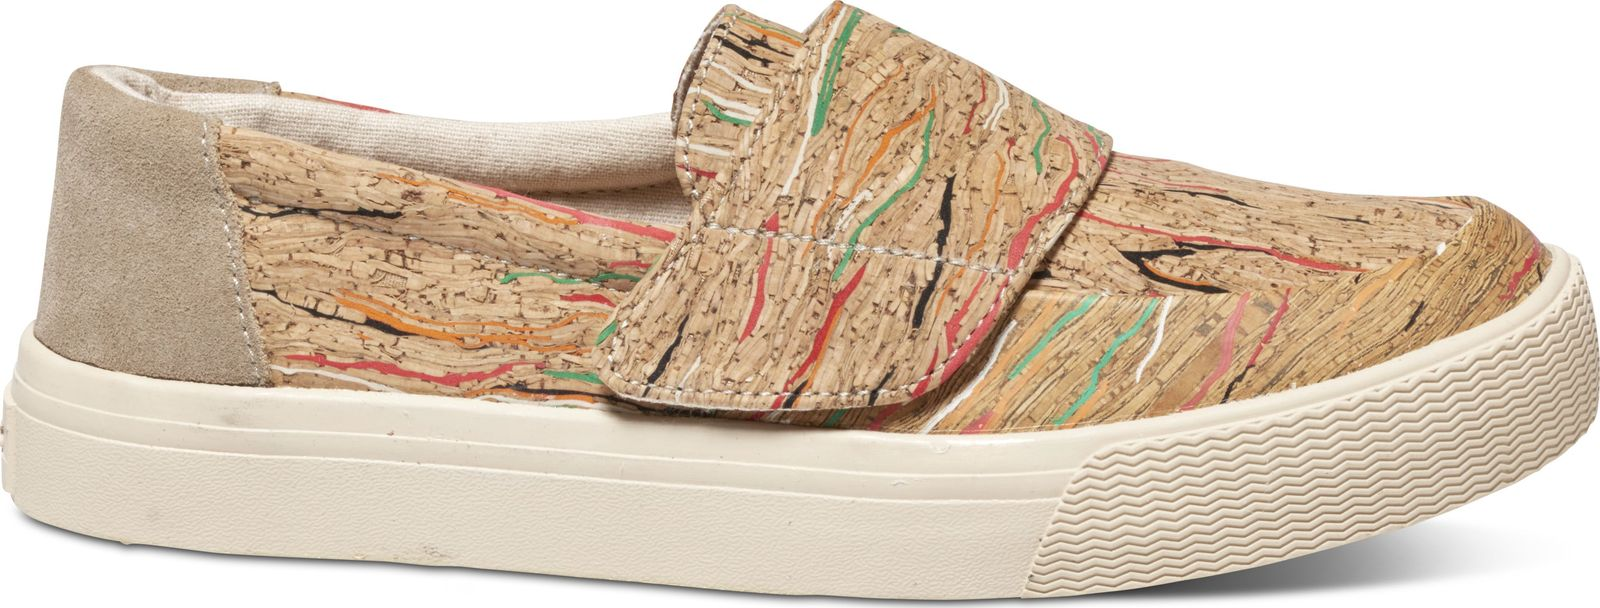 TOMS Cork Women's Altair Slipon Multi 38